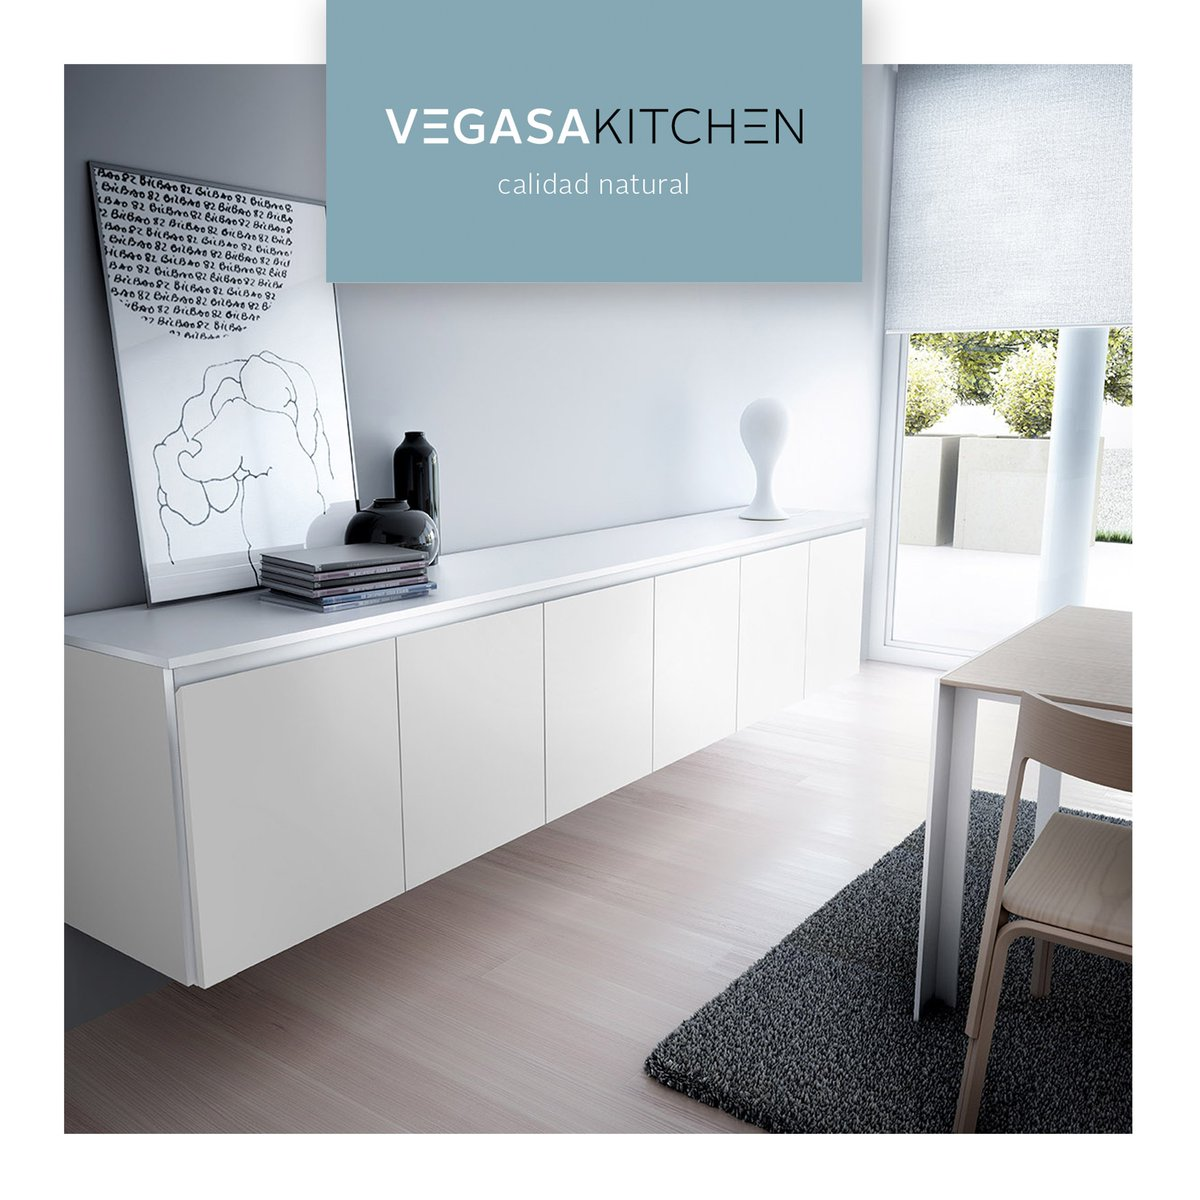 Vegasa Kitchen on Twitter: \